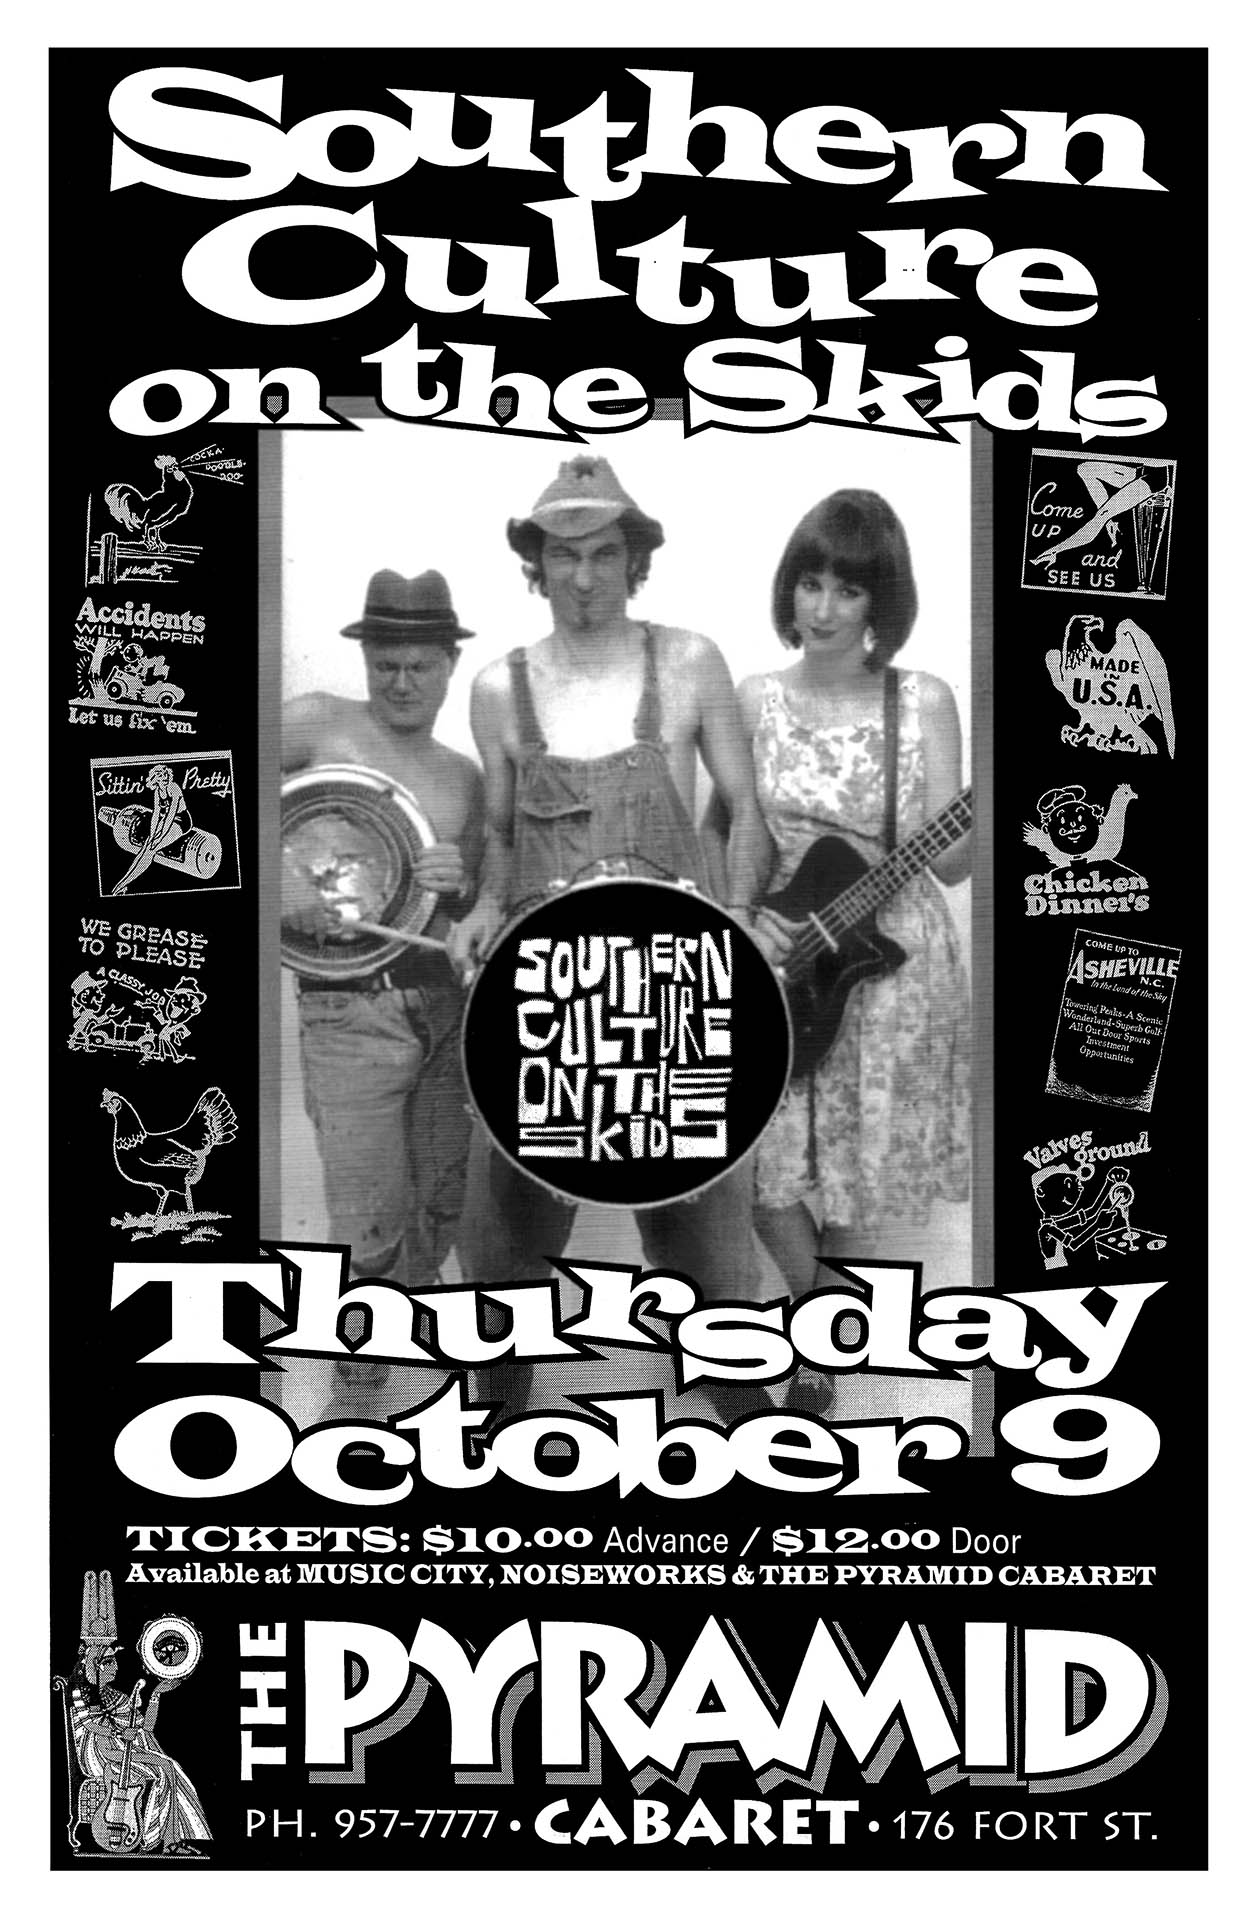 Southern Culture On The Skids – 1997